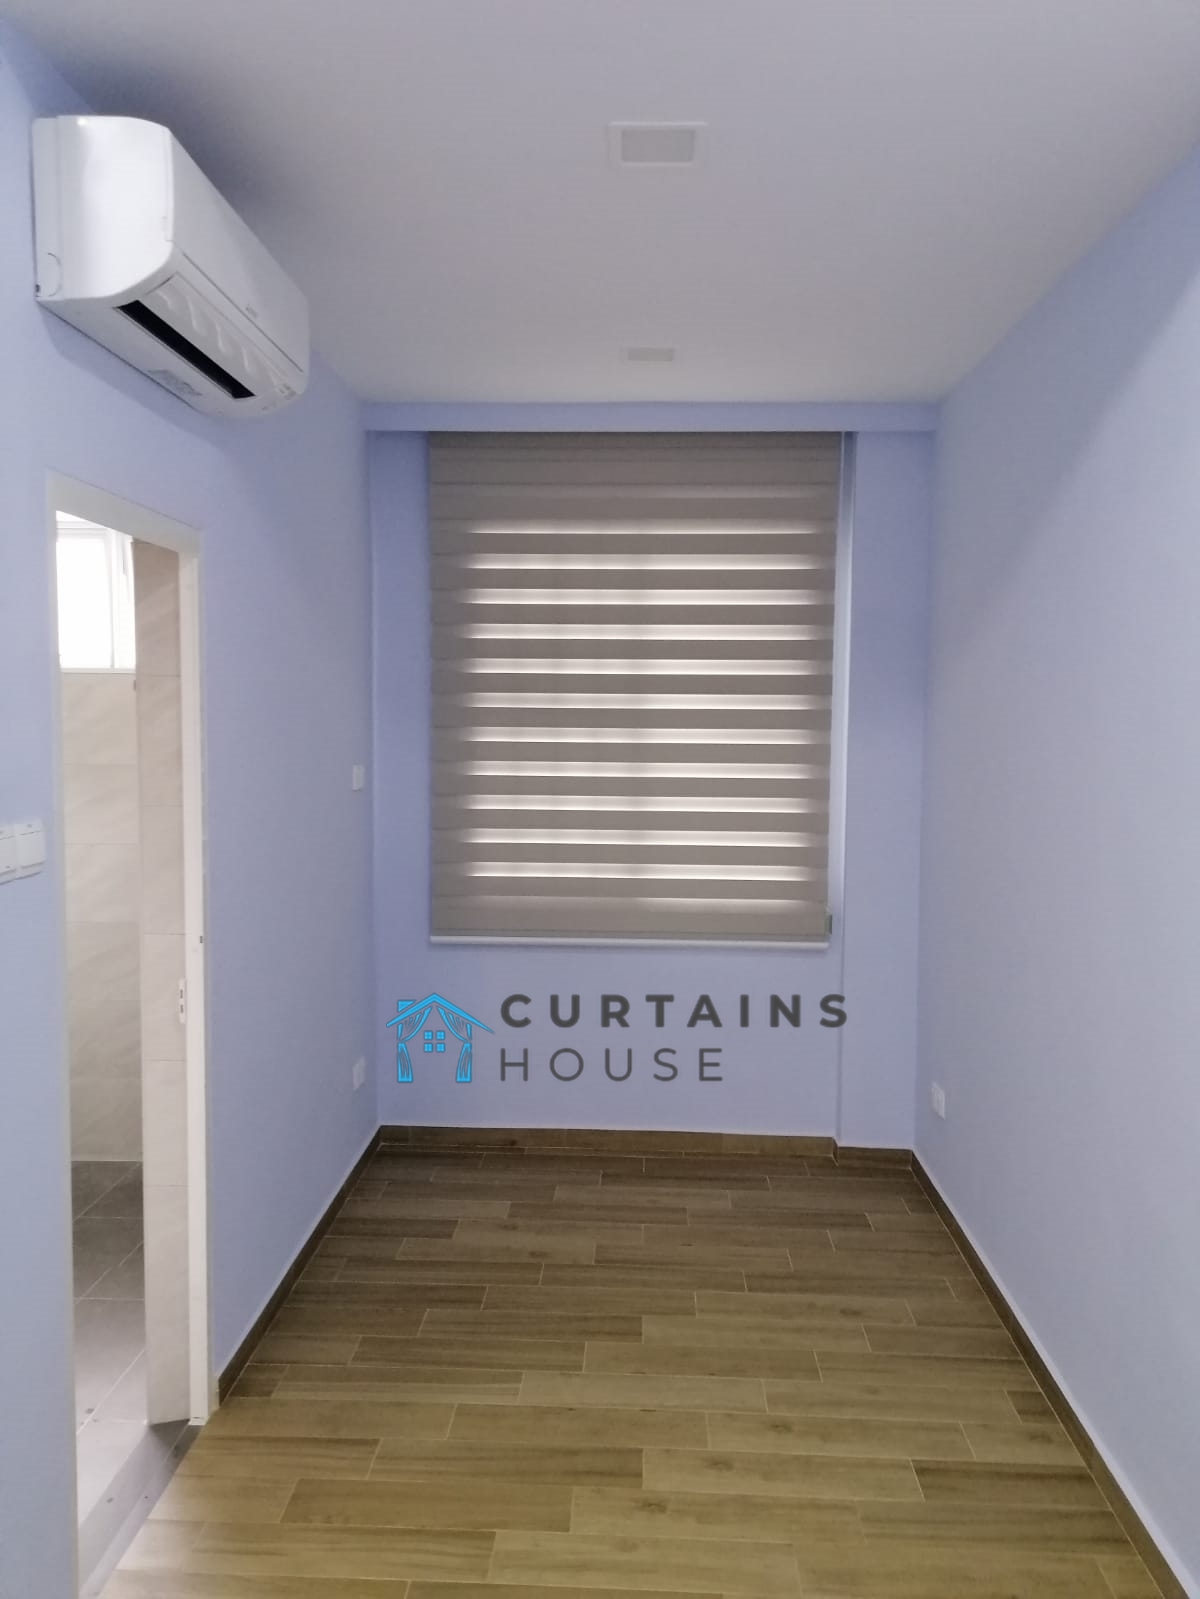 Korean Blinds Corridor Window Blinds Curtains House Singapore Condo – Hougang